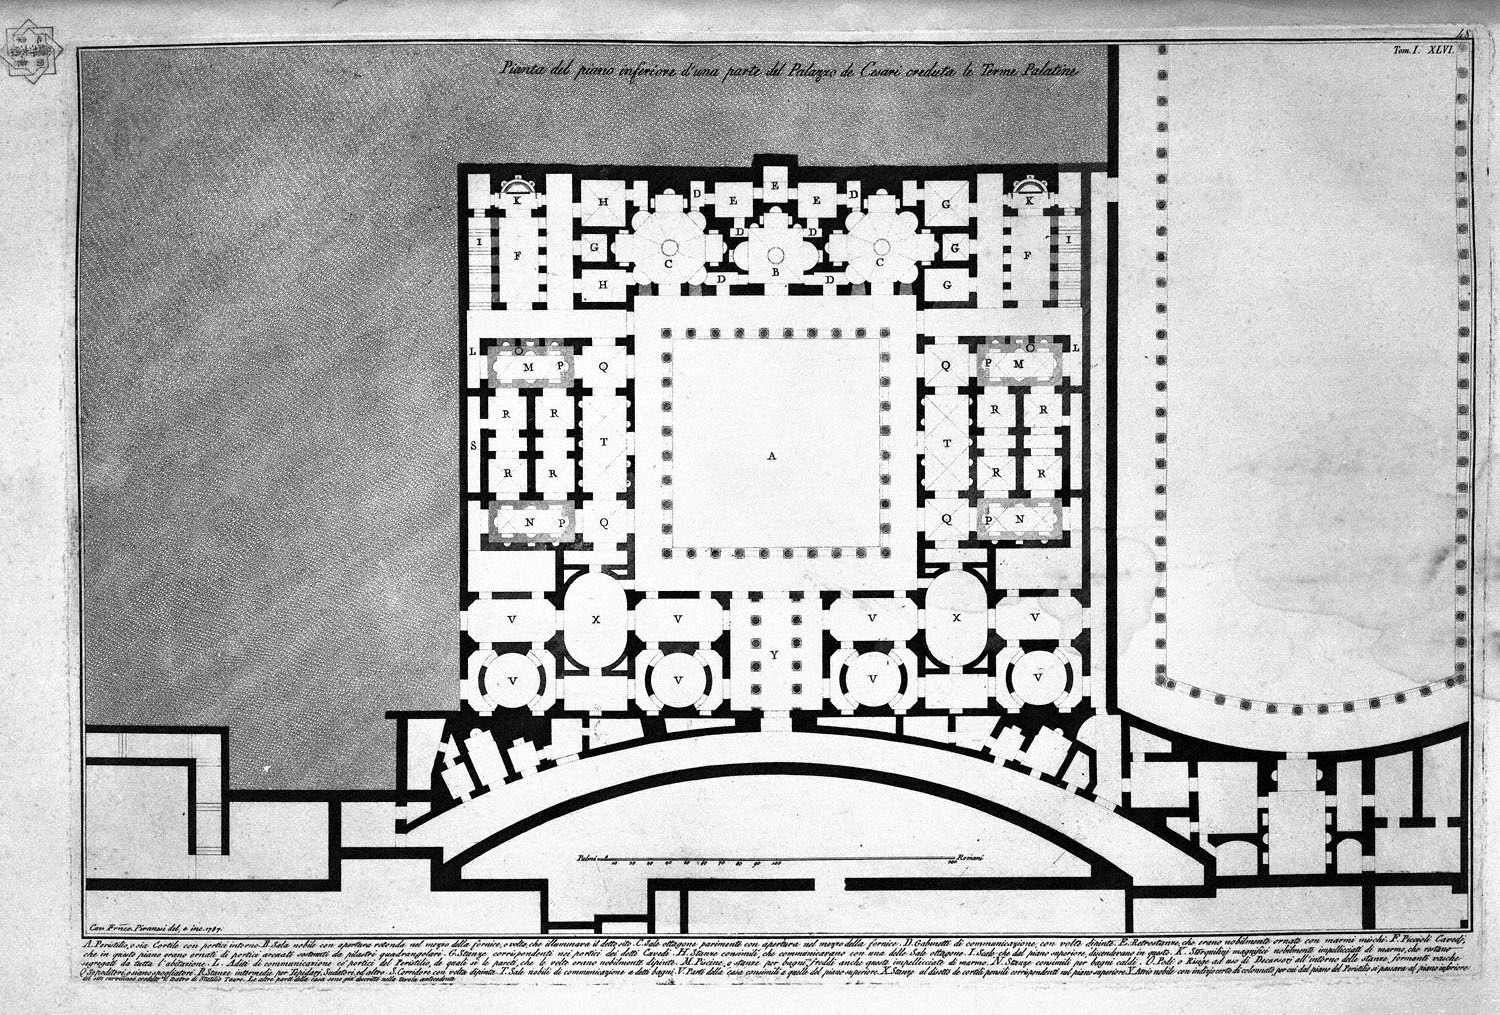 The Roman antiquities, t. 1, Plate XLV. Plan of upper floor of the Caesars Palace de `d` home `s believed Augustus (Drawing and inc. By Francesco Piranesi), 1756